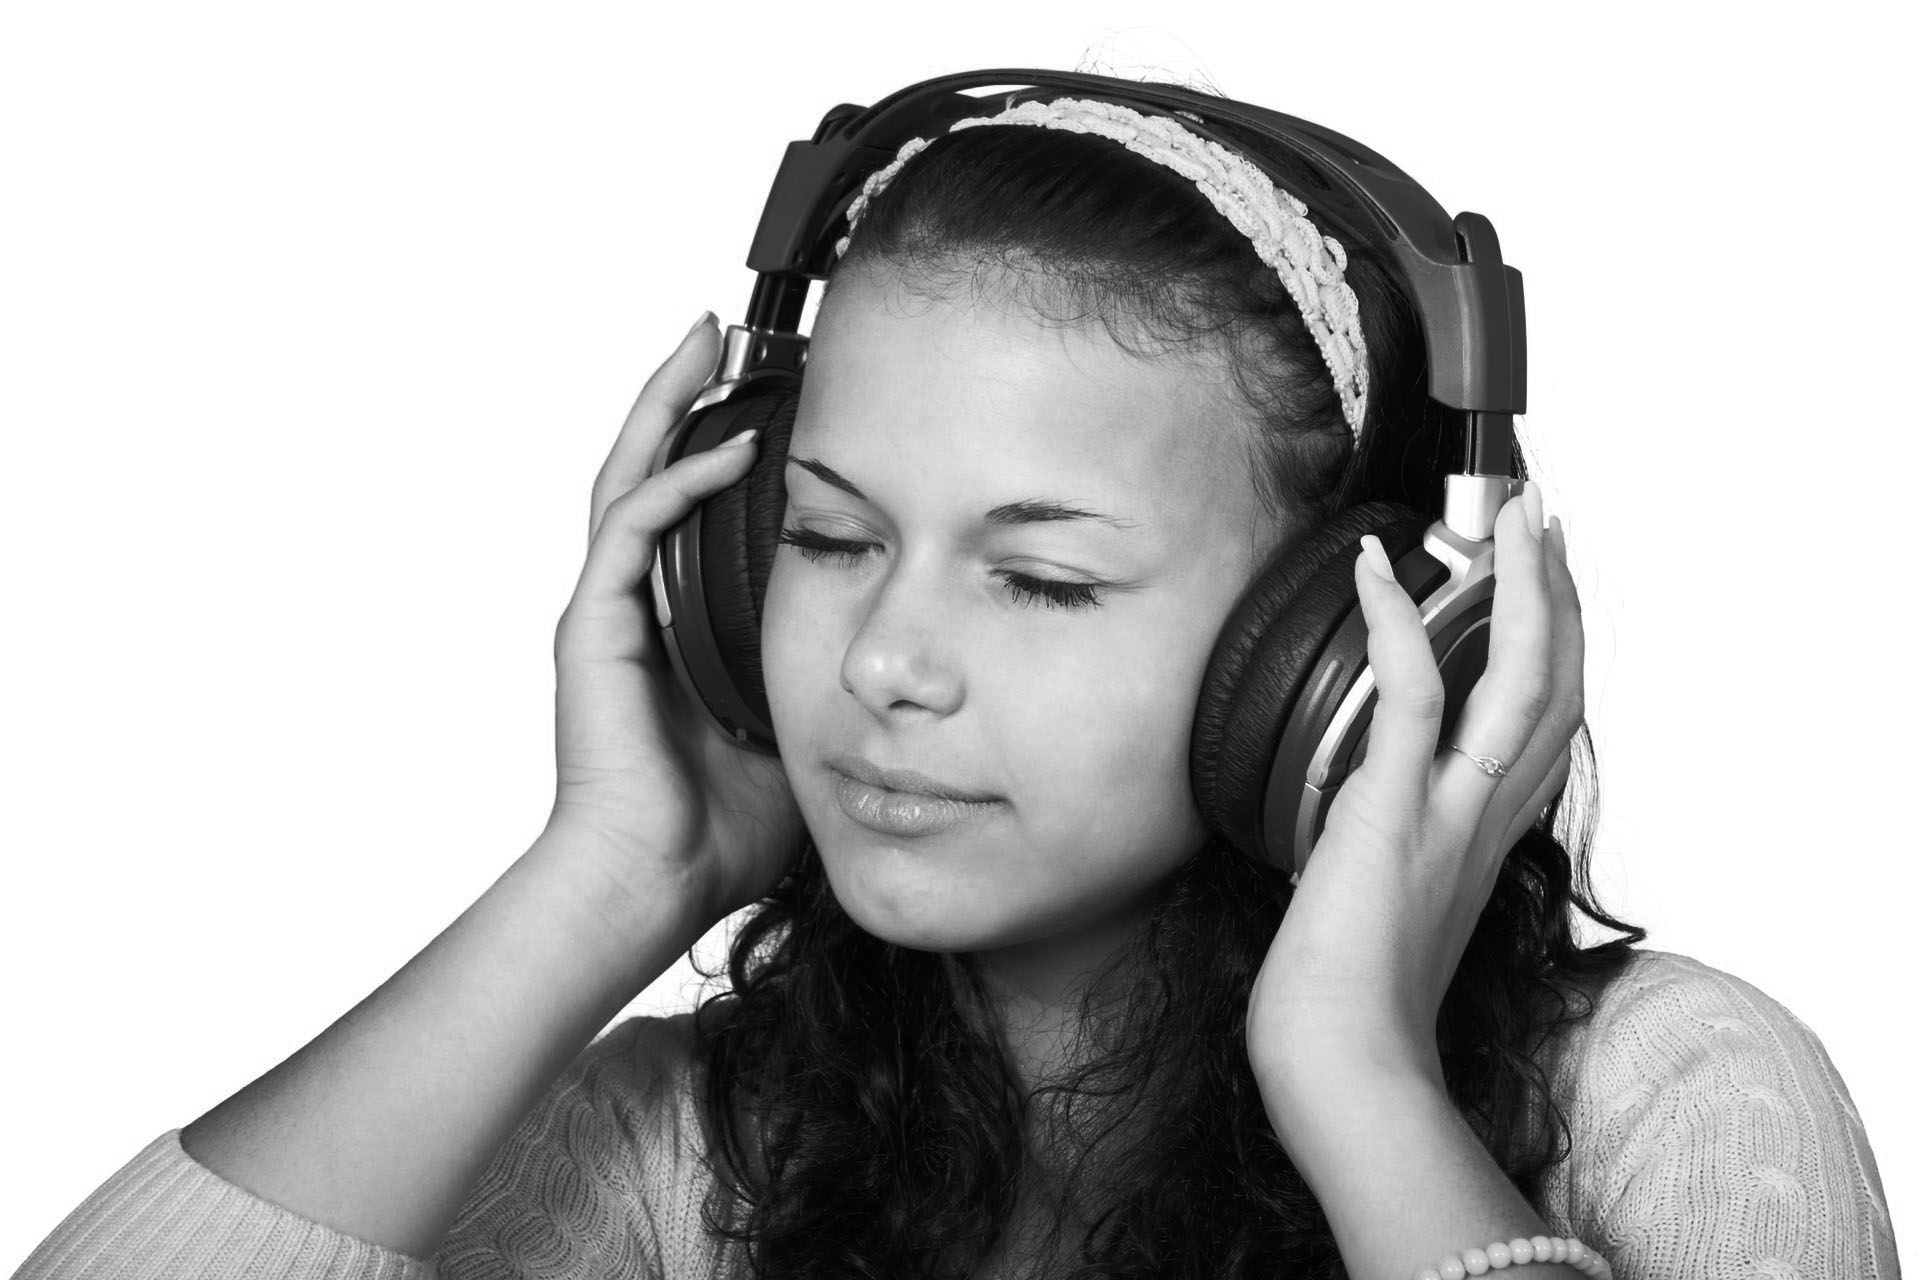 cute-female-girl-headphones-41553